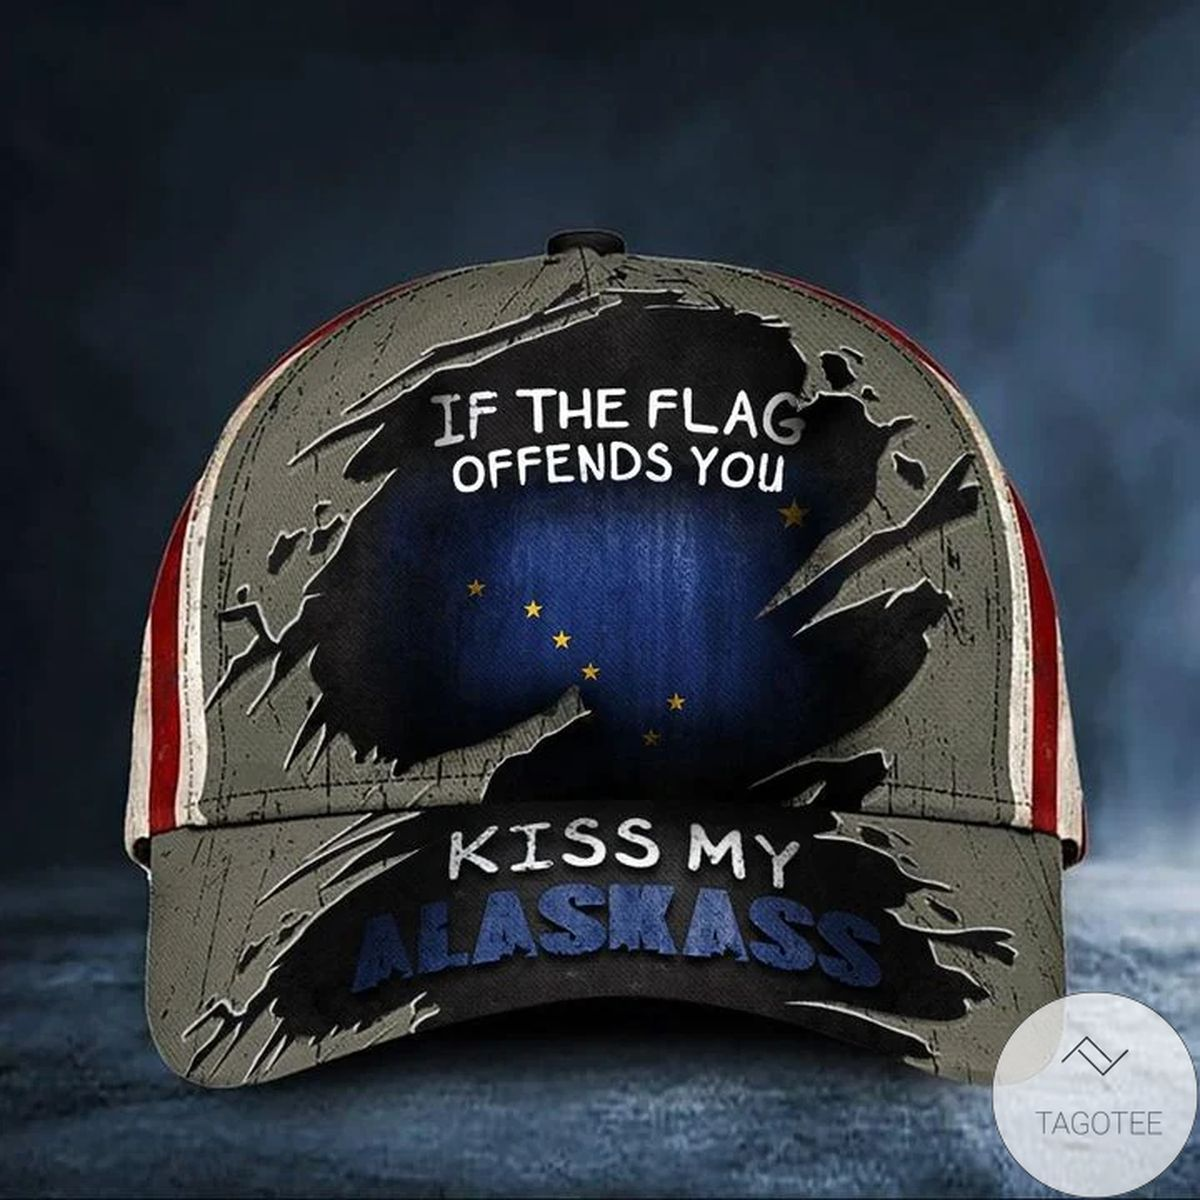 Buy In US If The Flag Offends You Kiss My Alaskass Cap USA Flag Vintage Hat Funny Patriot Alaska Merch